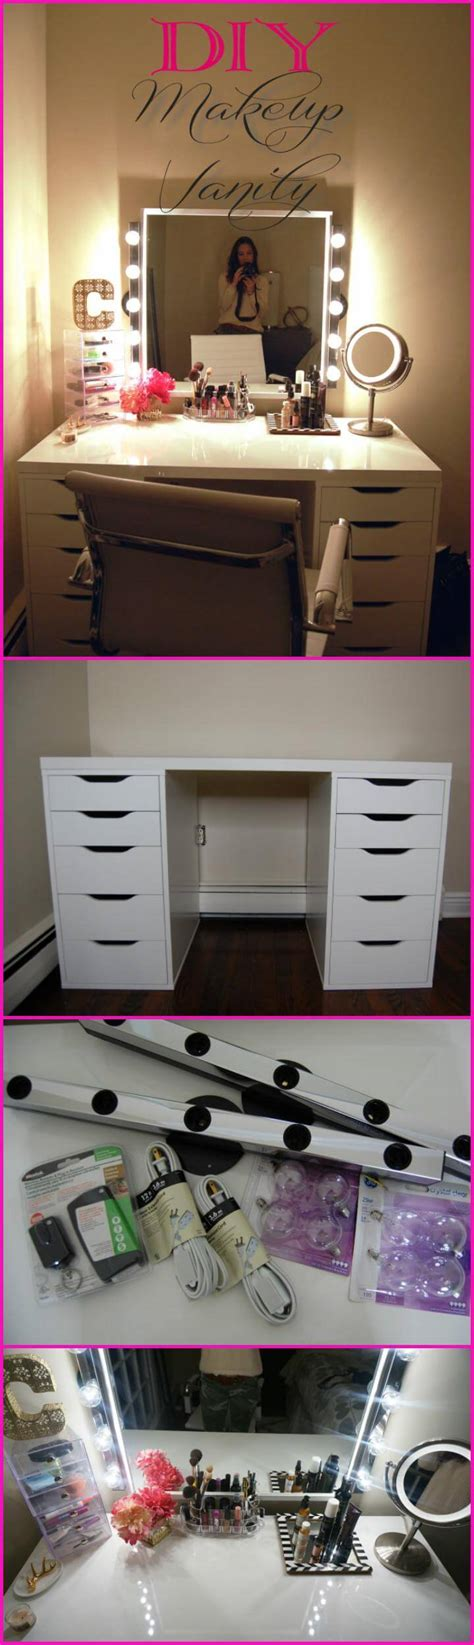 diy makeup vanity made2style 20 diy makeup vanity tutorials diy your own makeup